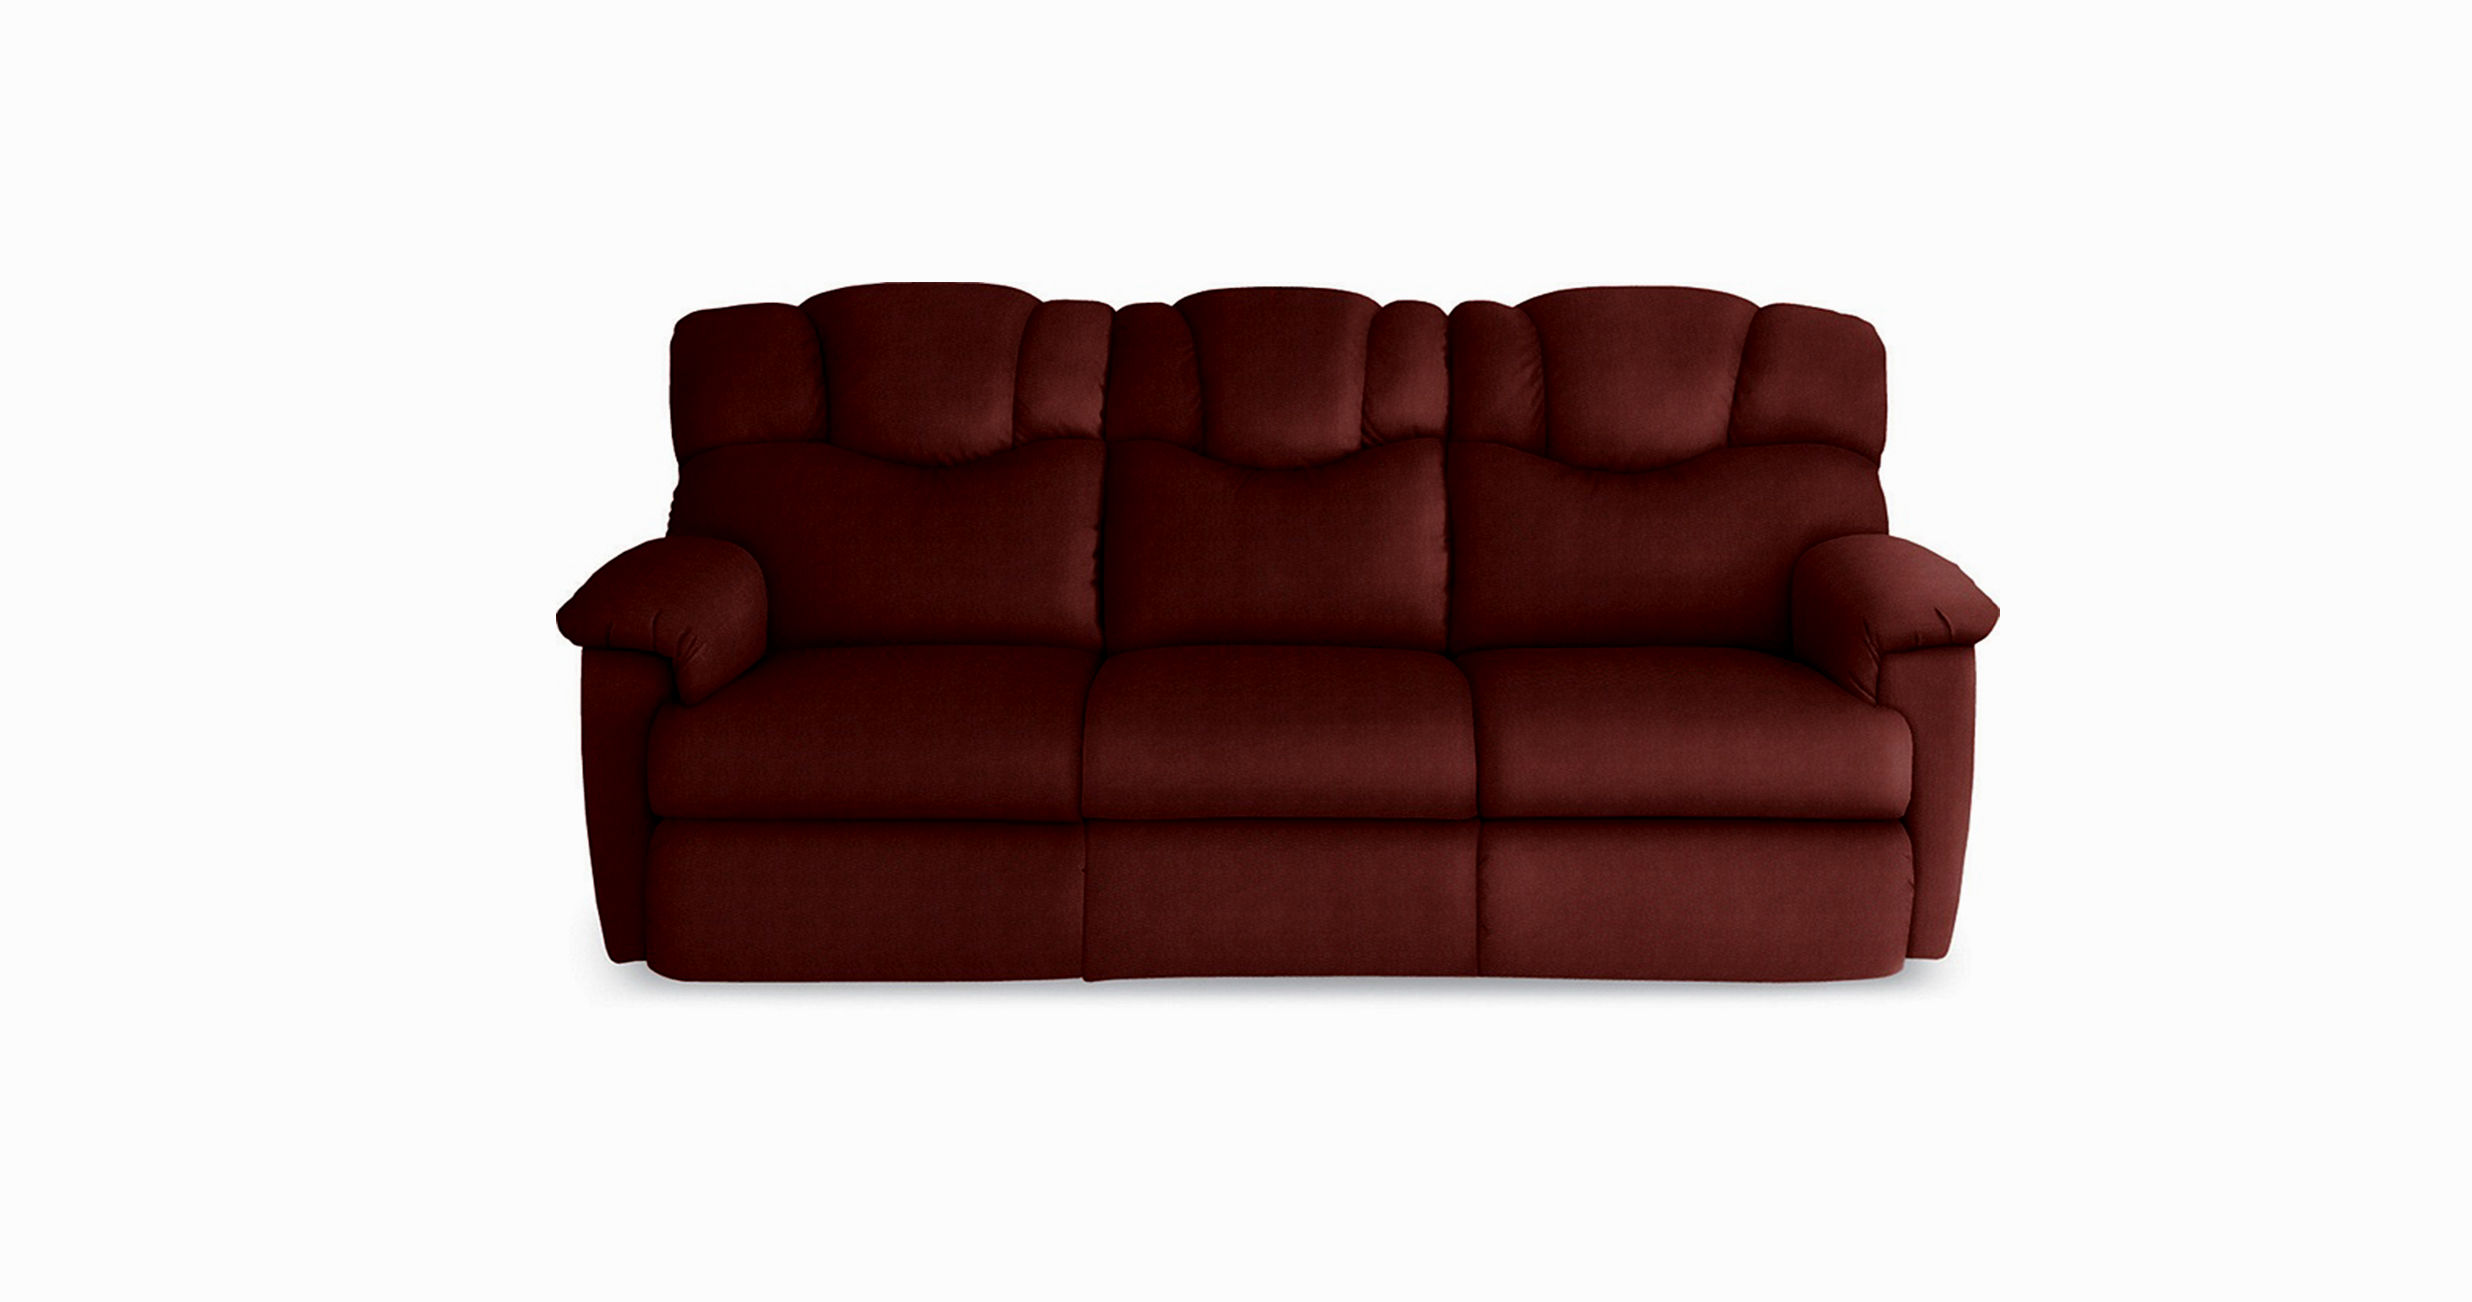 latest sectional sleeper sofas pattern-Finest Sectional Sleeper sofas Online